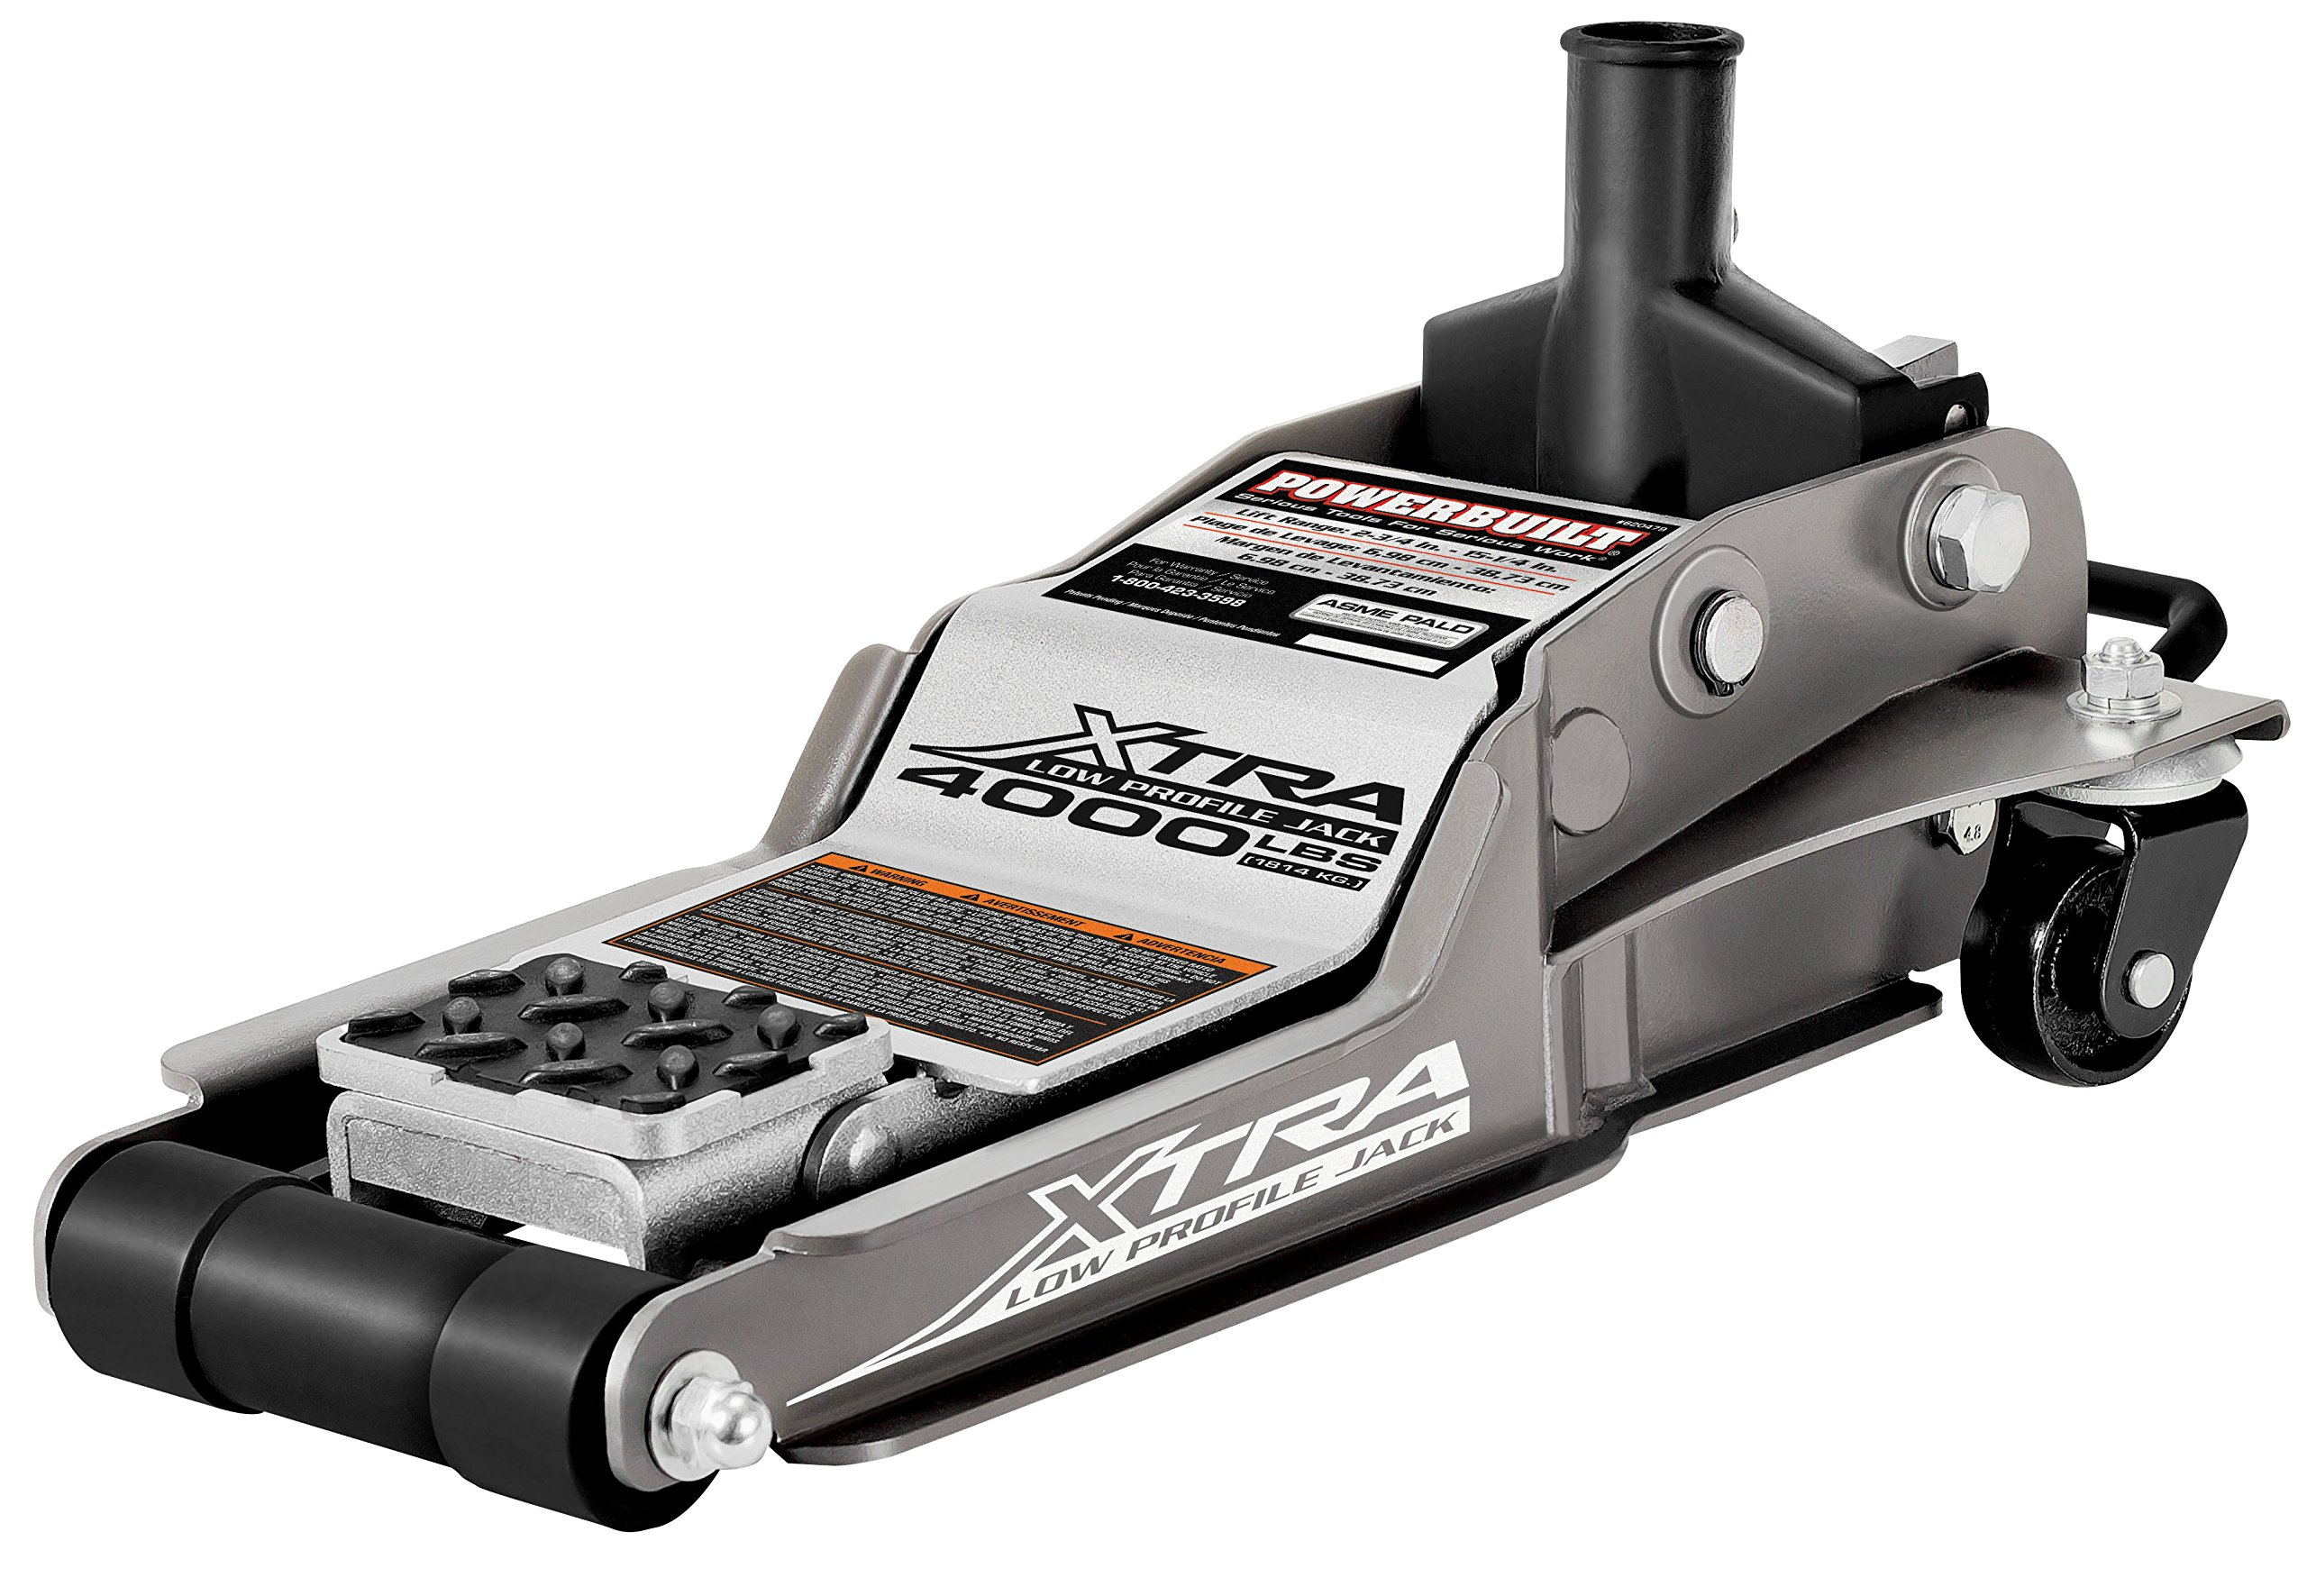 Powerbuilt 620479E Xtra Low Profile Floor Jack with Safety Bar - 2 Ton Load Capacity by Powerbuilt